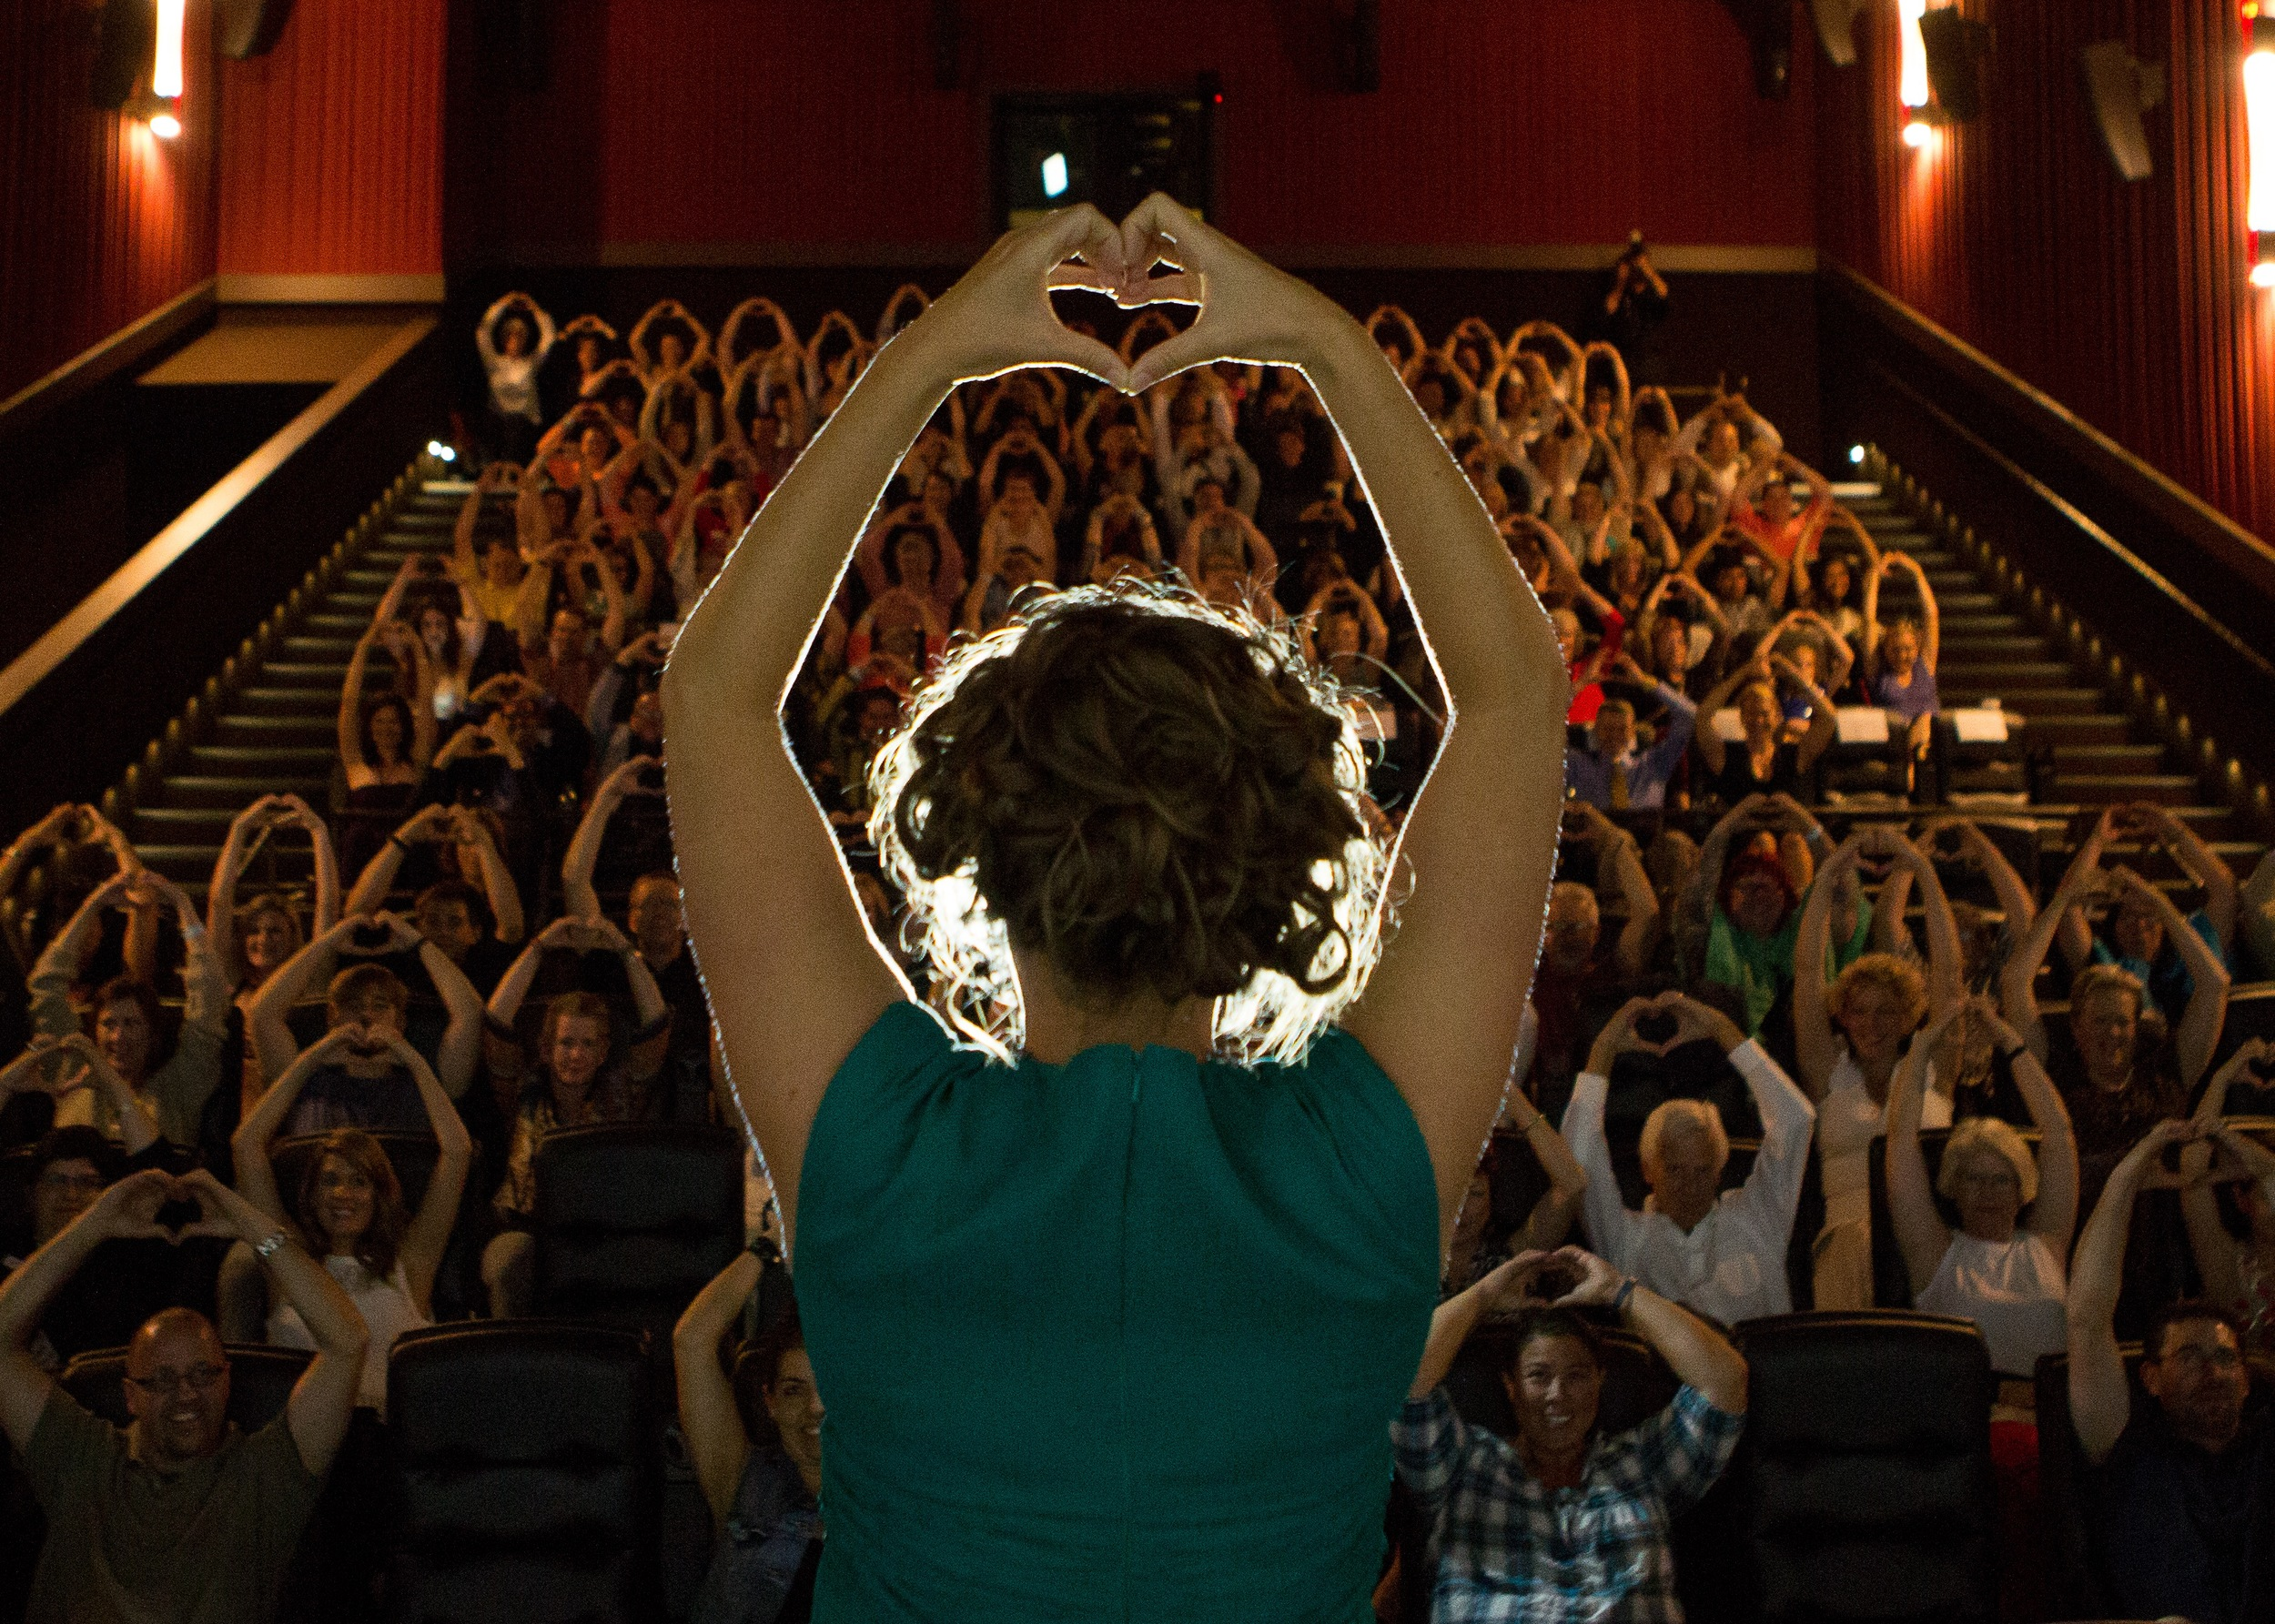 """Download High Res Image of Dr. Rhea Zimmerman Komarek """"Love Bombing"""" with the audience at the Love Bomb World Premier. Photo Credit: Briana Marie Photography. For press use only in association with the film Love Bomb. Any other use will be considered copyright infringement."""